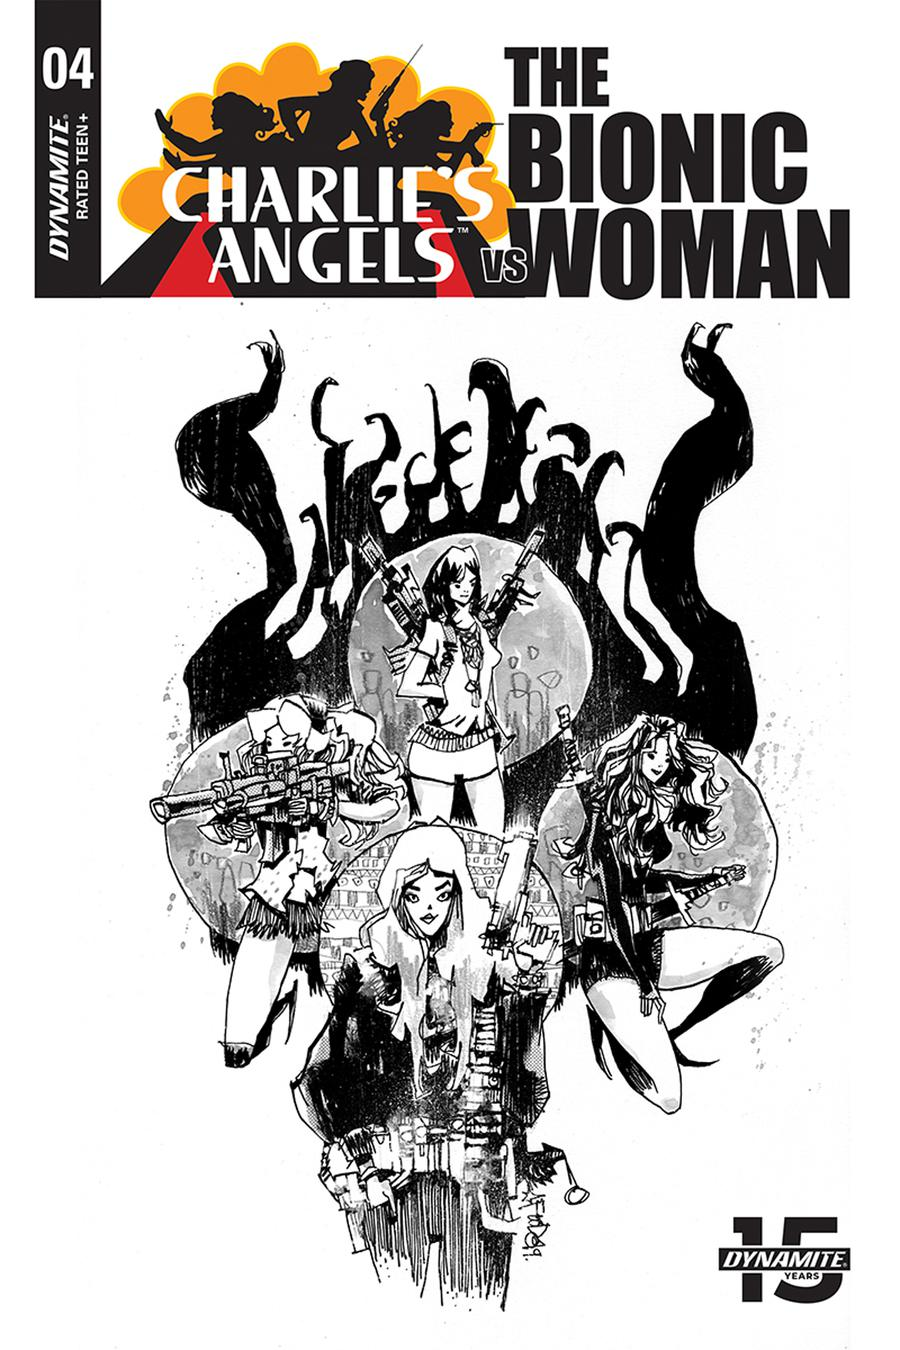 Charlies Angels vs The Bionic Woman #4 Cover C Incentive Jim Mahfood Black & White Cover